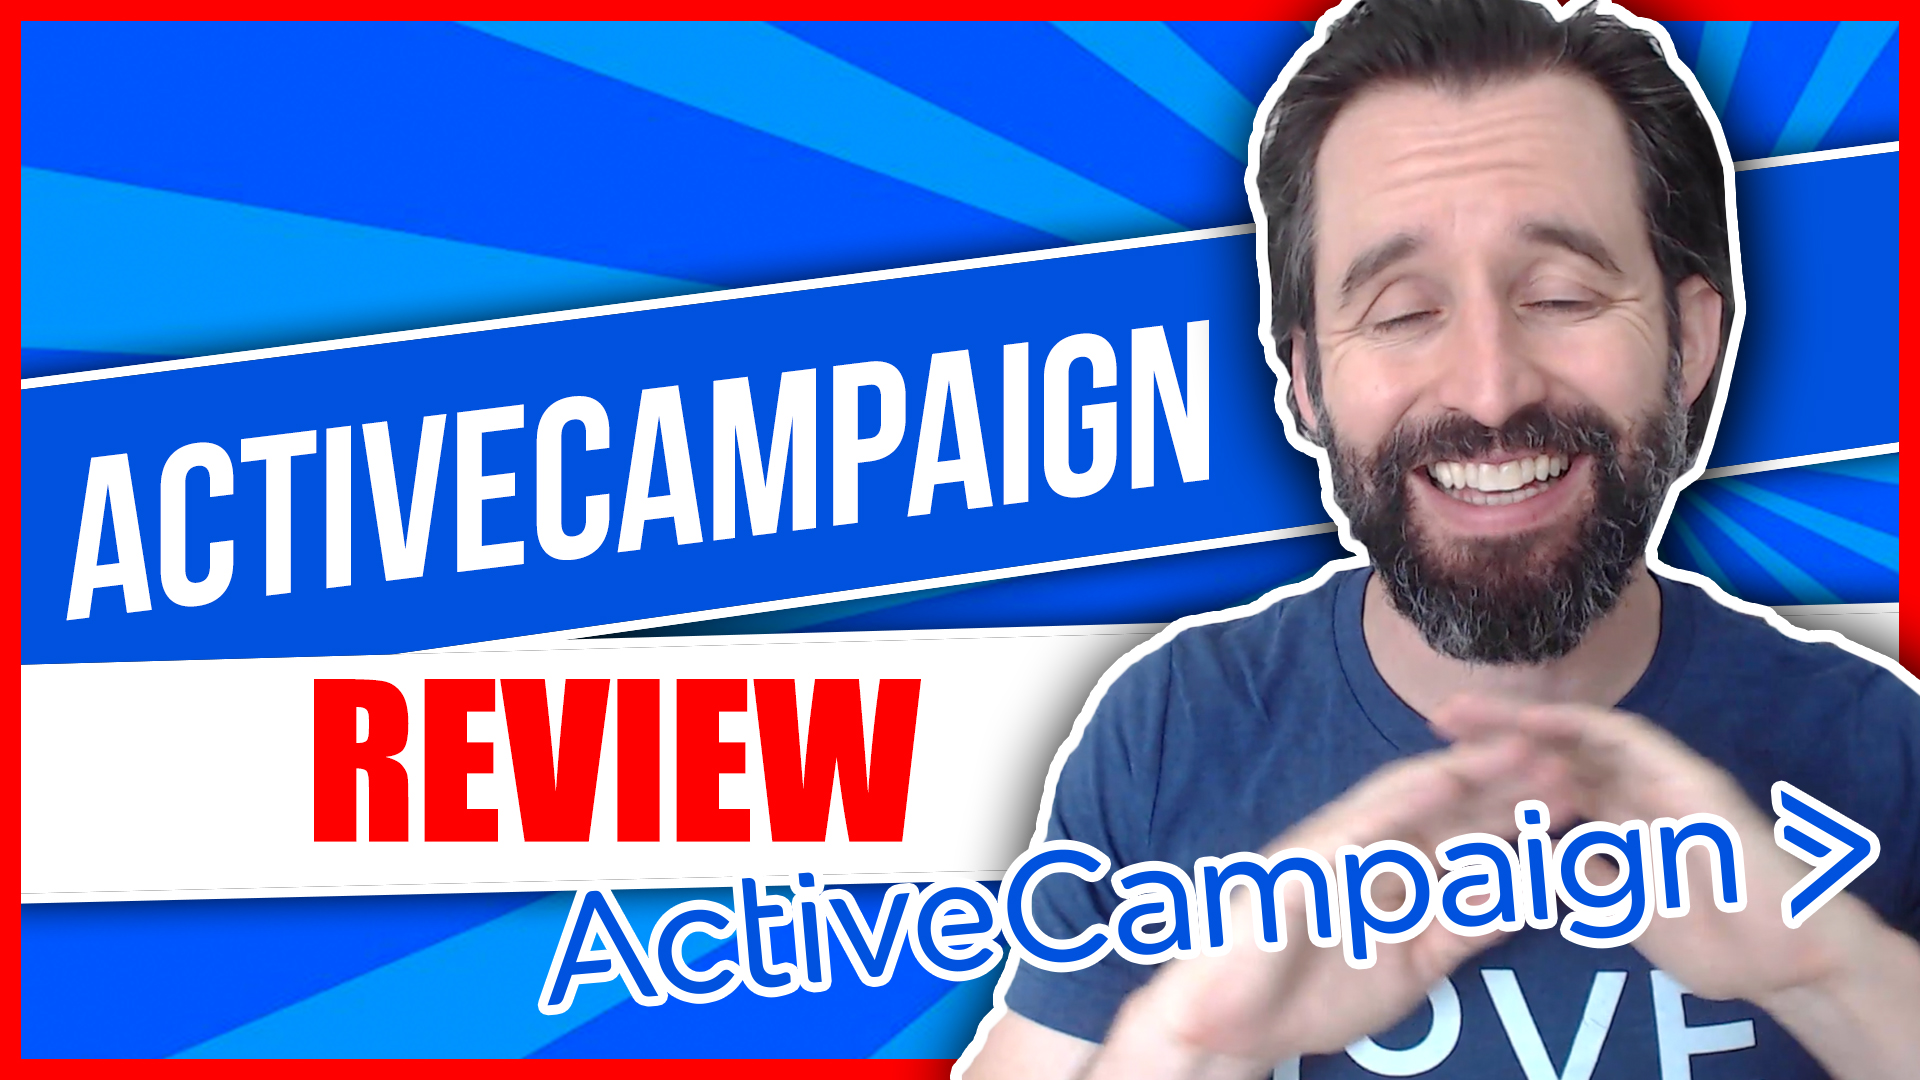 Buy Active Campaign Online Voucher Code Printables 80 Off